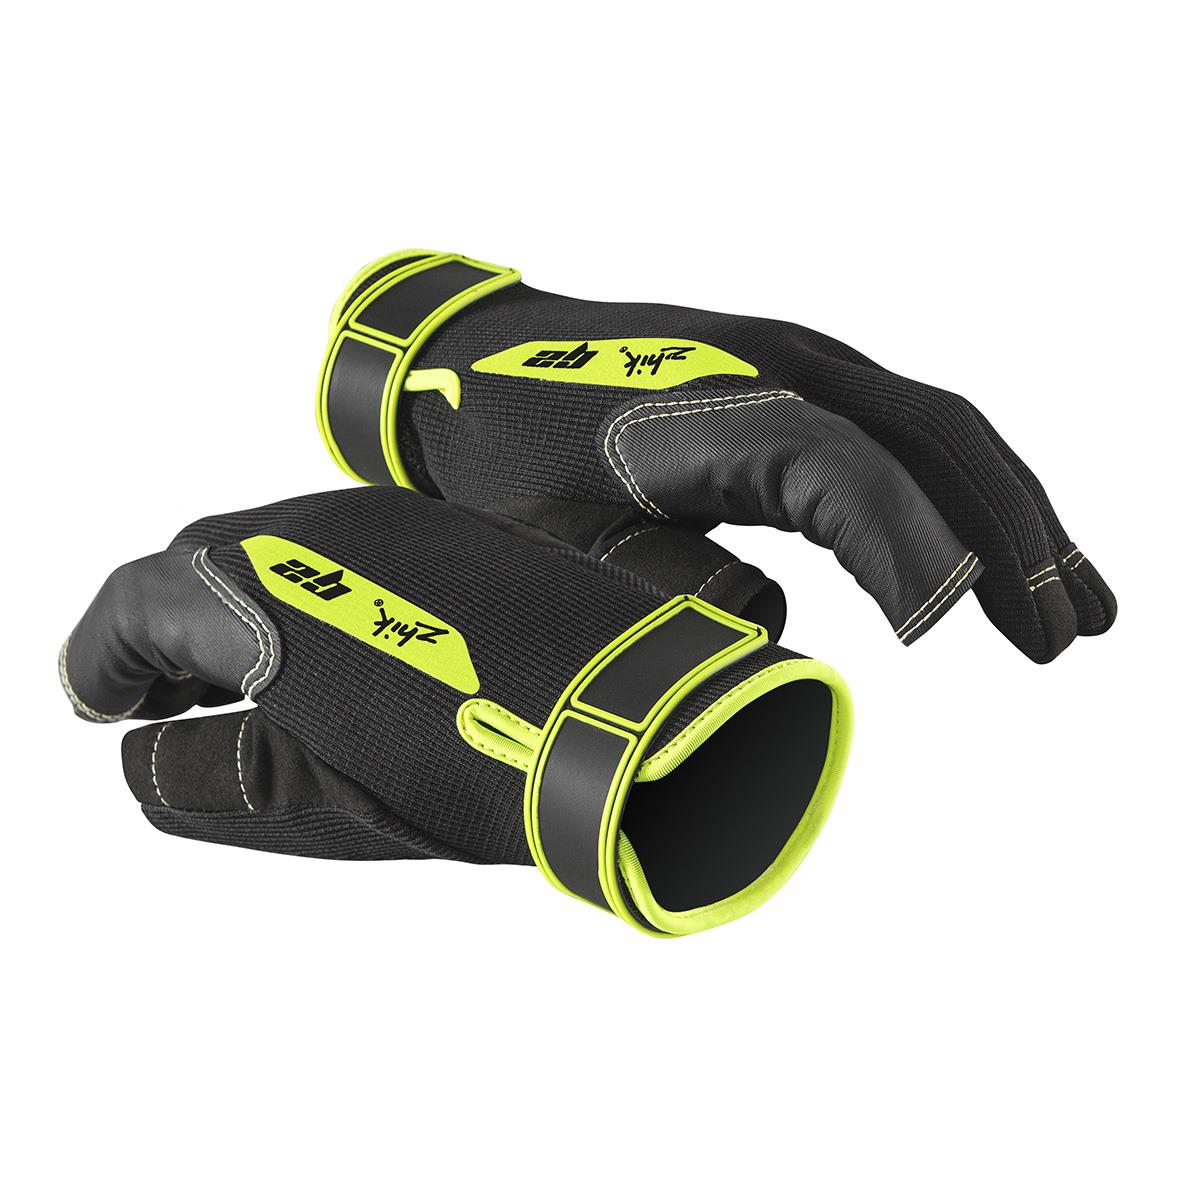 Zhik Long Finger G2 Sailing Gloves